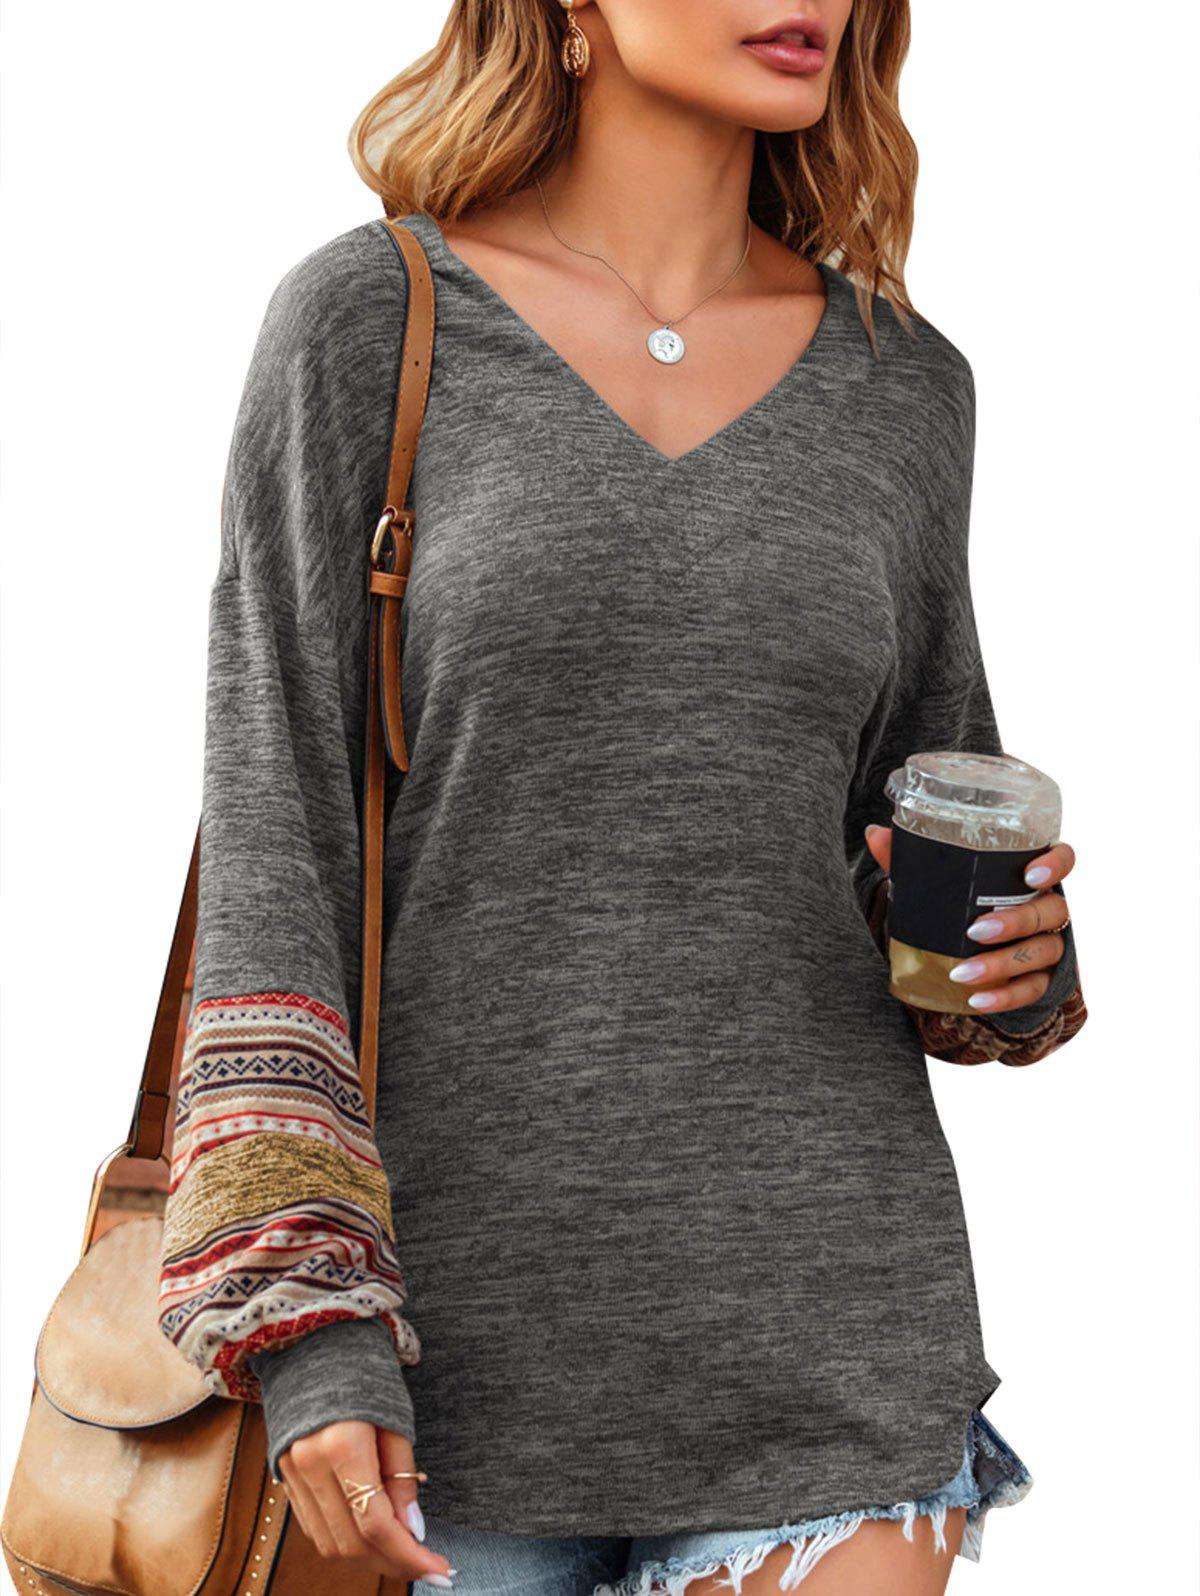 Discount V Neck Ethnic Heathered Knitwear